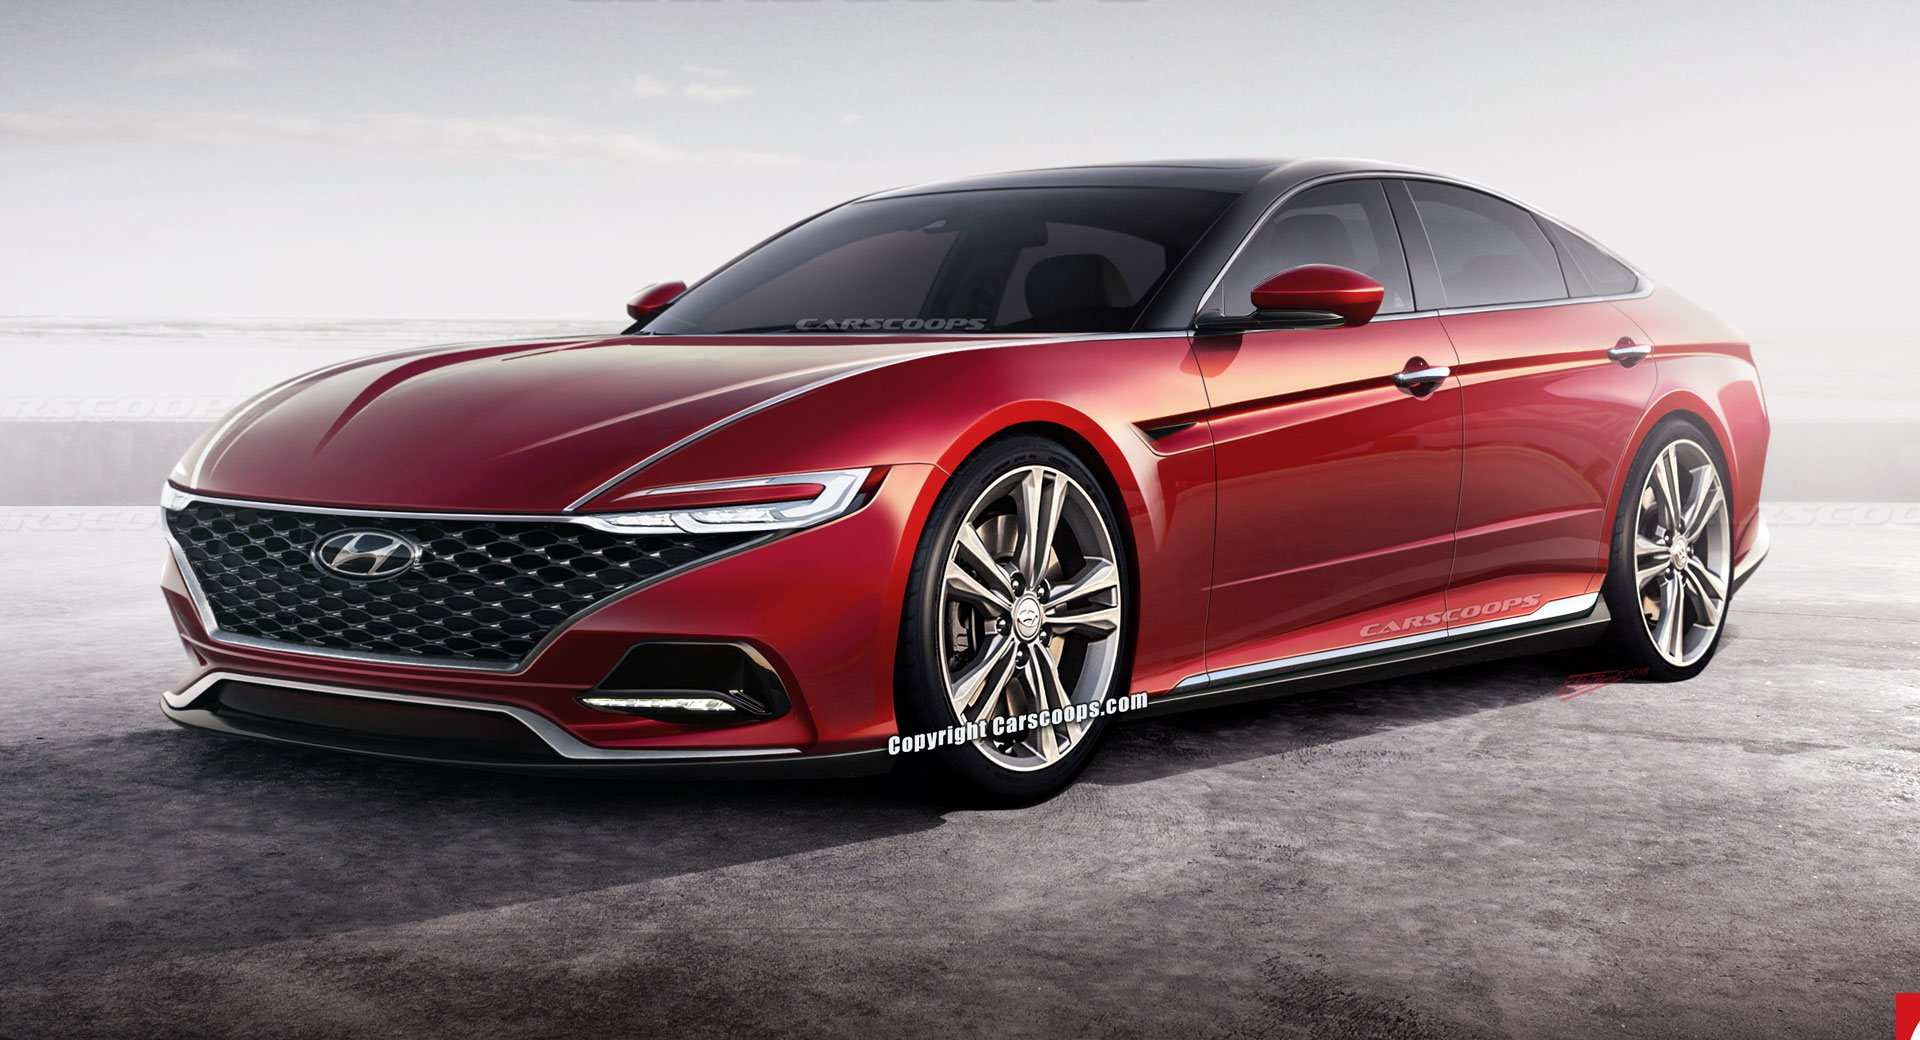 98 Great 2020 Hyundai Sonata Redesign New Review with 2020 Hyundai Sonata Redesign